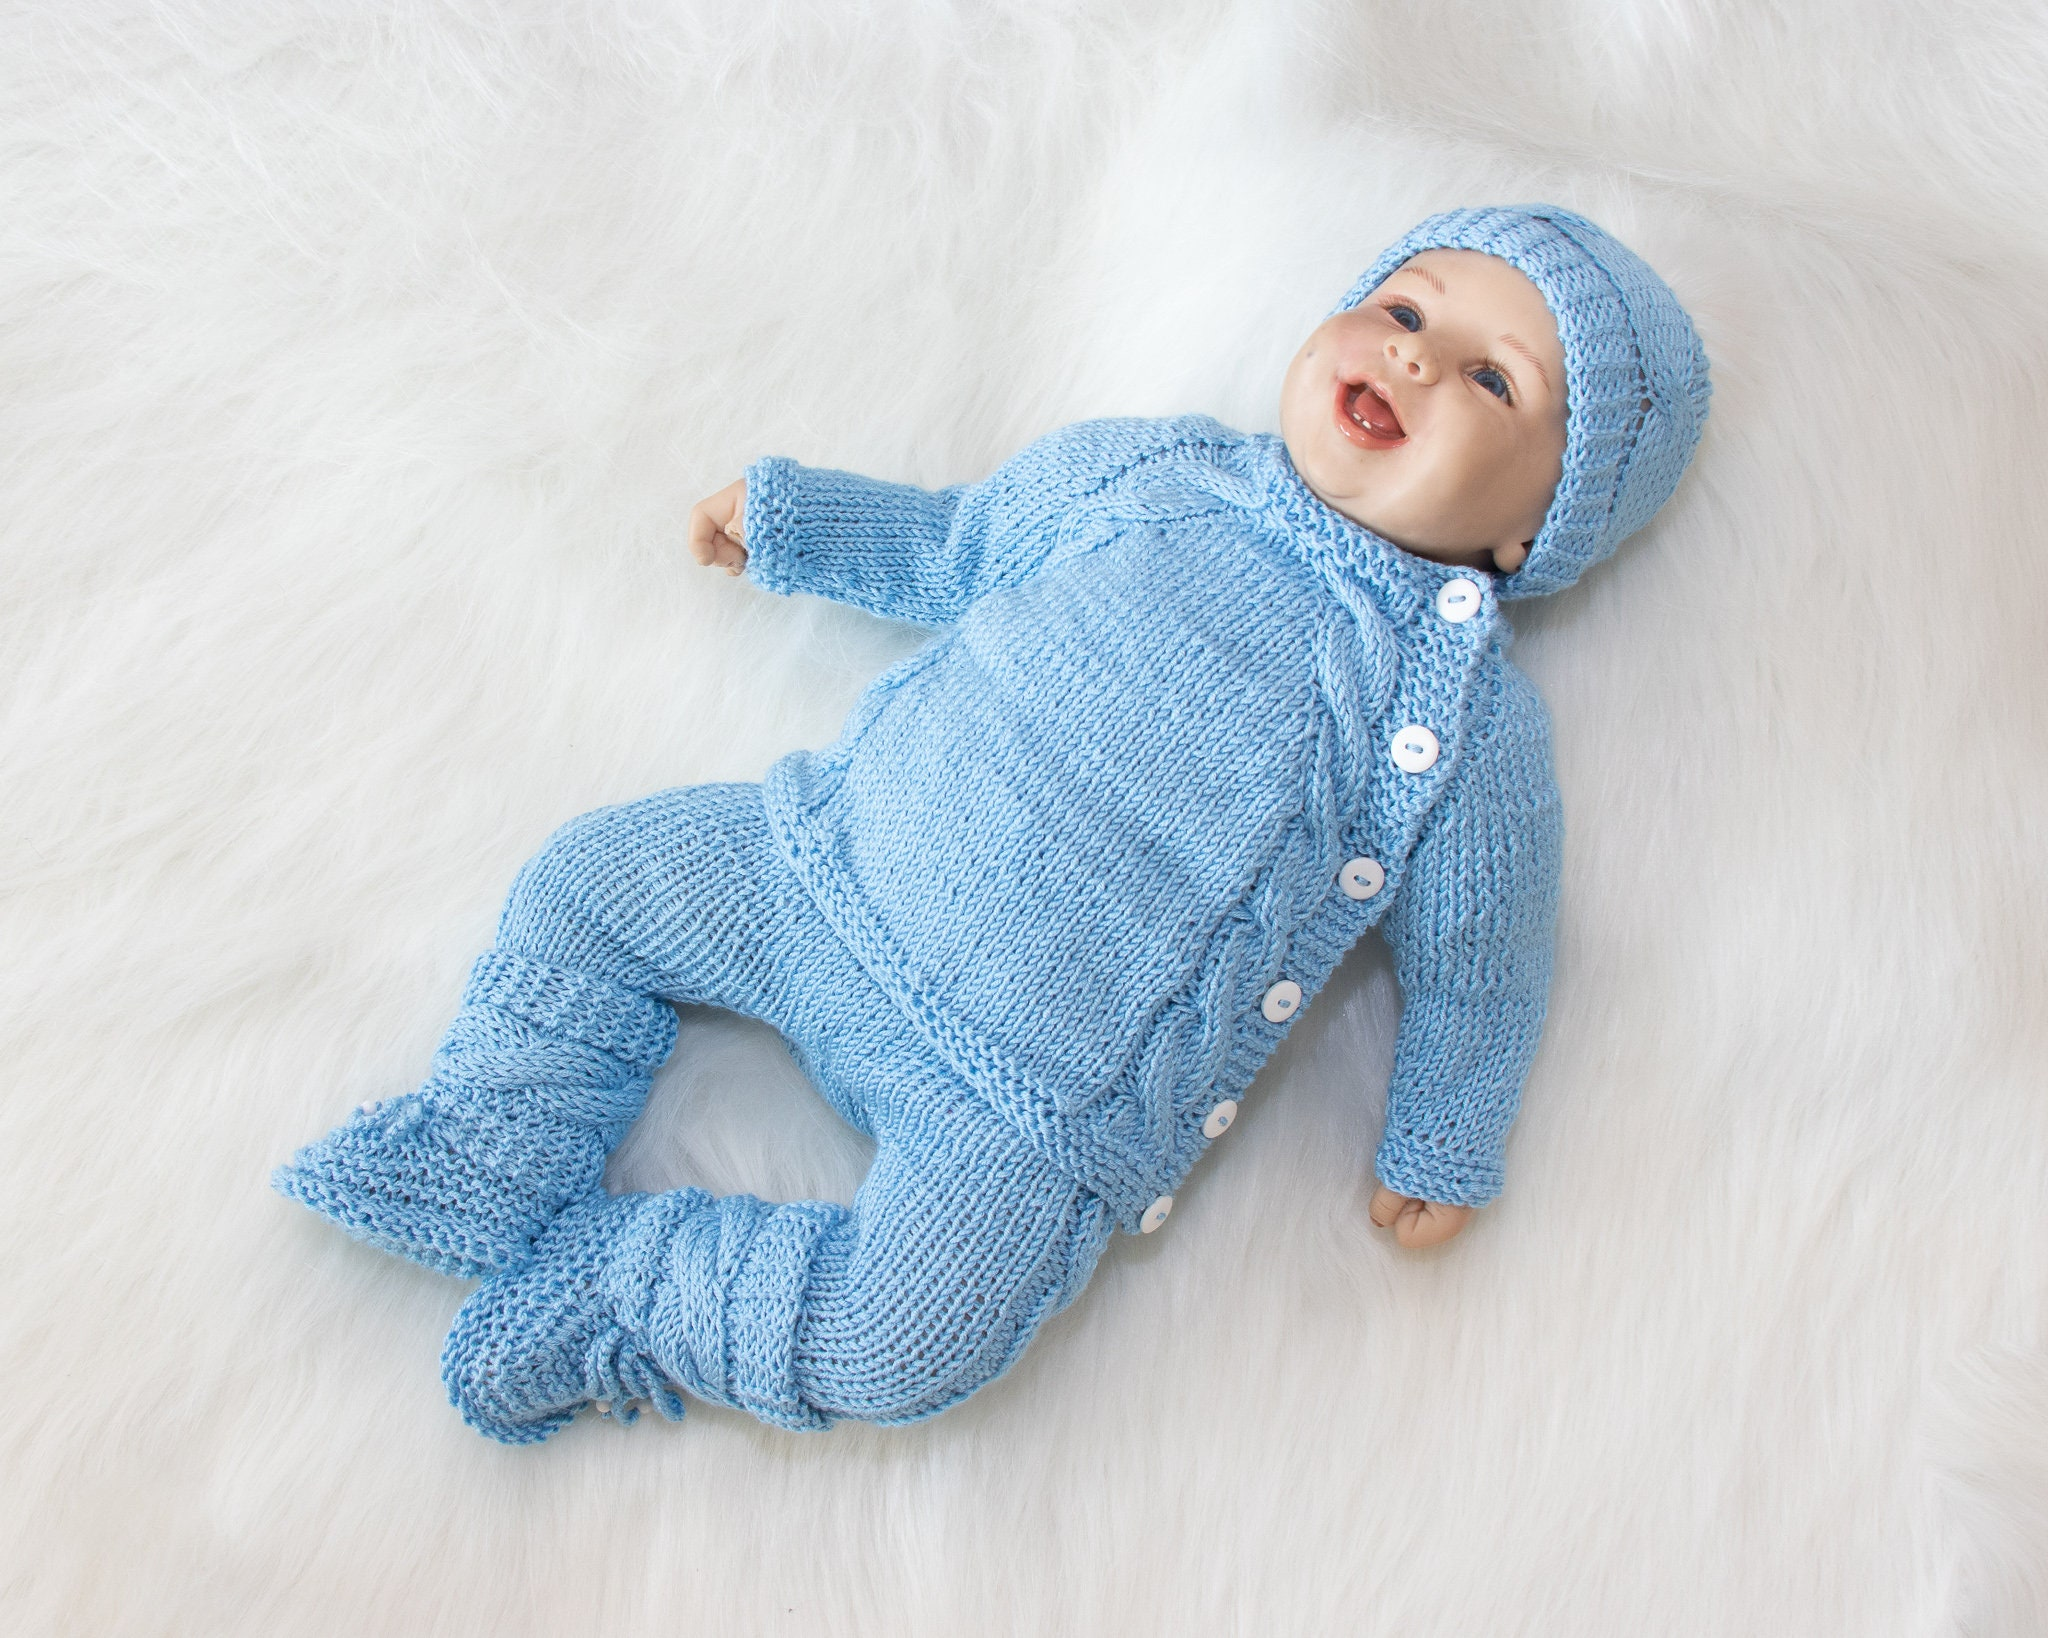 4c9db1c17 0-3 m baby boy coming home outfit, Baby blue outfit, Hand Knit ...